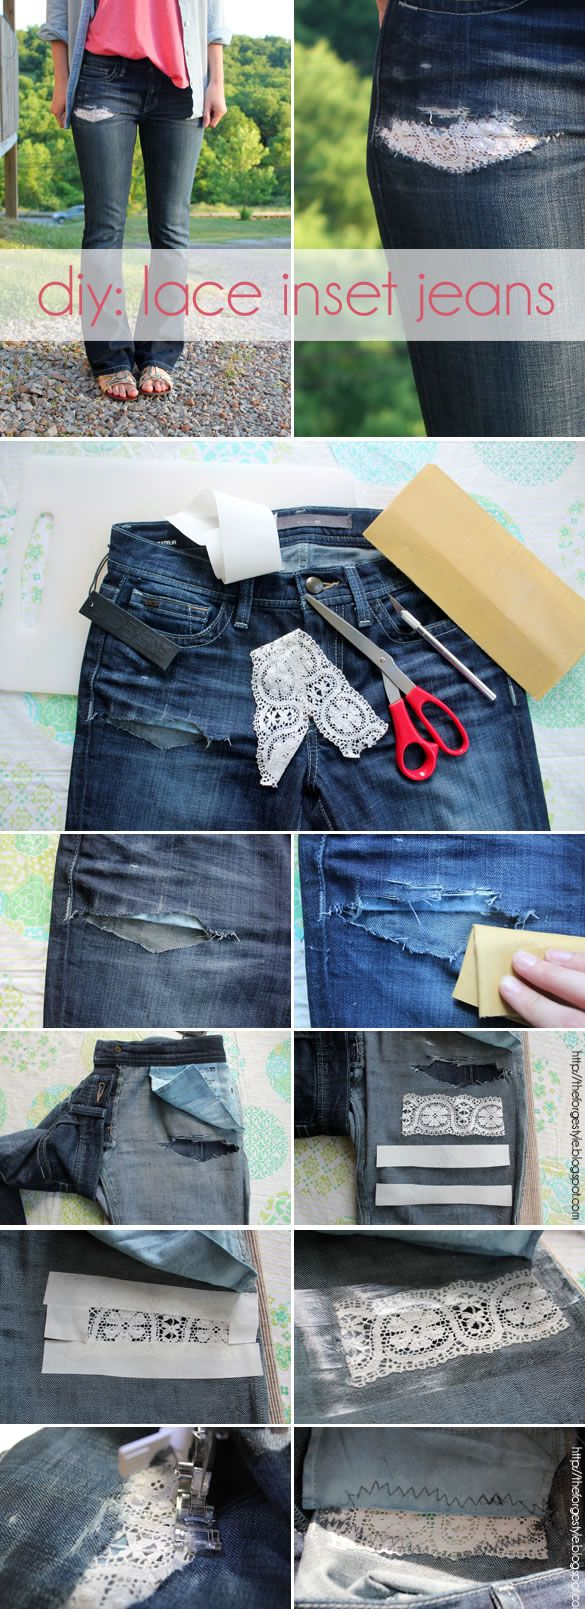 DIY Lace Inset Jeas crafts craft ideas easy crafts diy ideas diy crafts diy clothes easy diy fun diy craft clothes craft fashion fashion diy diy jeans craft jeans